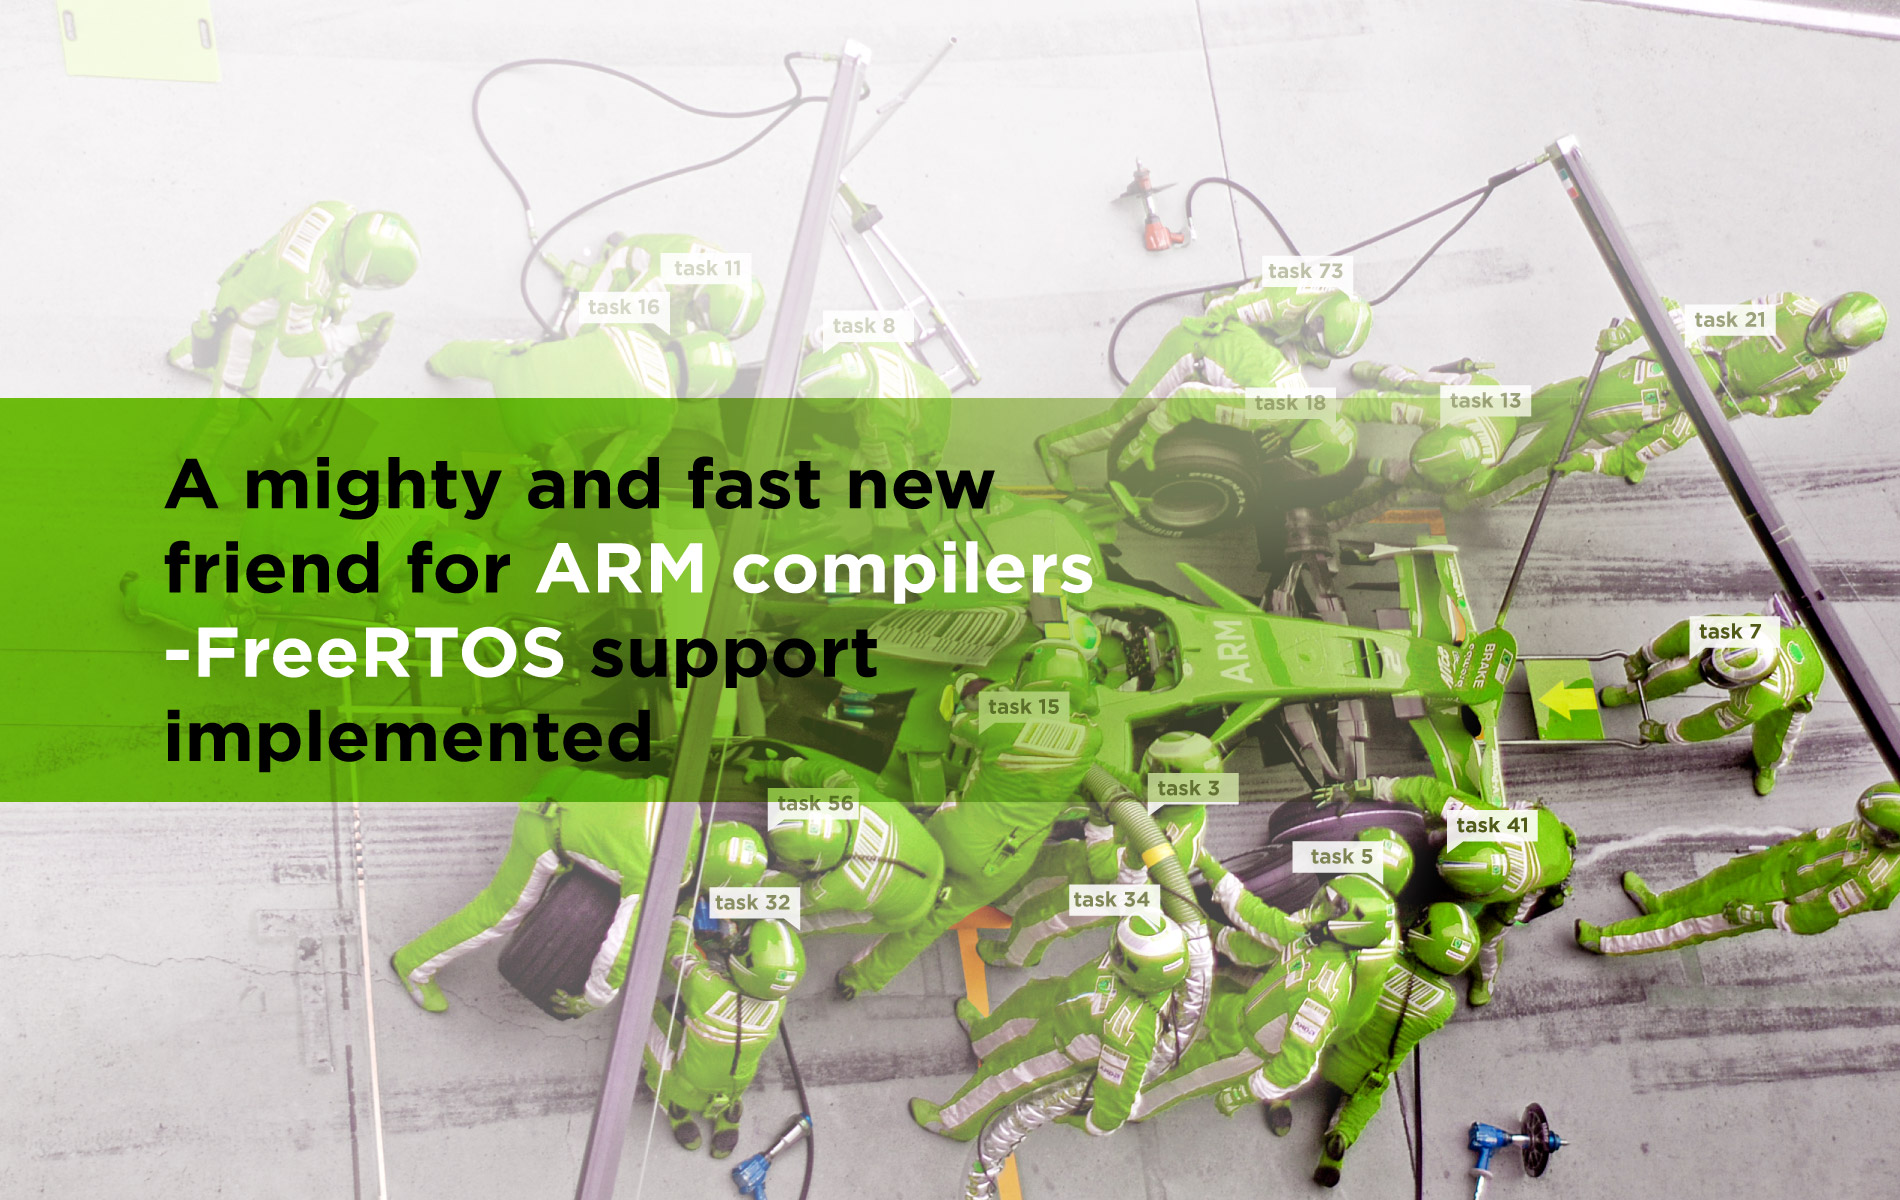 Your wish is our command - ARM compilers now with FreeRTOS support